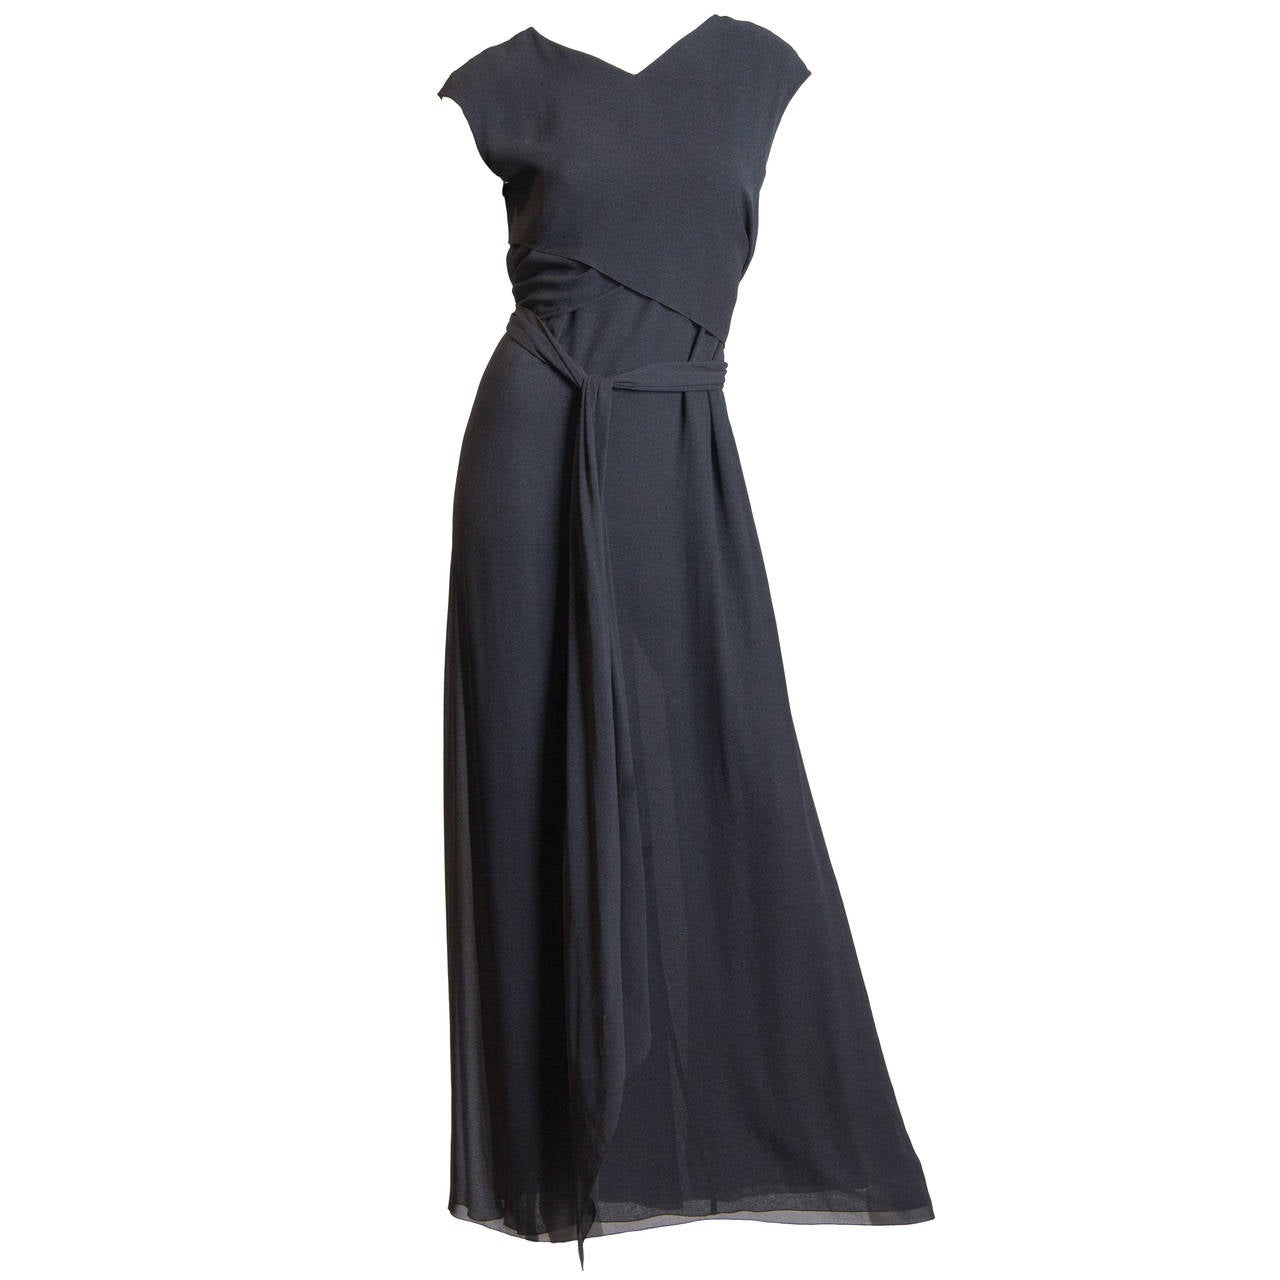 Slate Grey Crepe Dress from Chanel For Sale